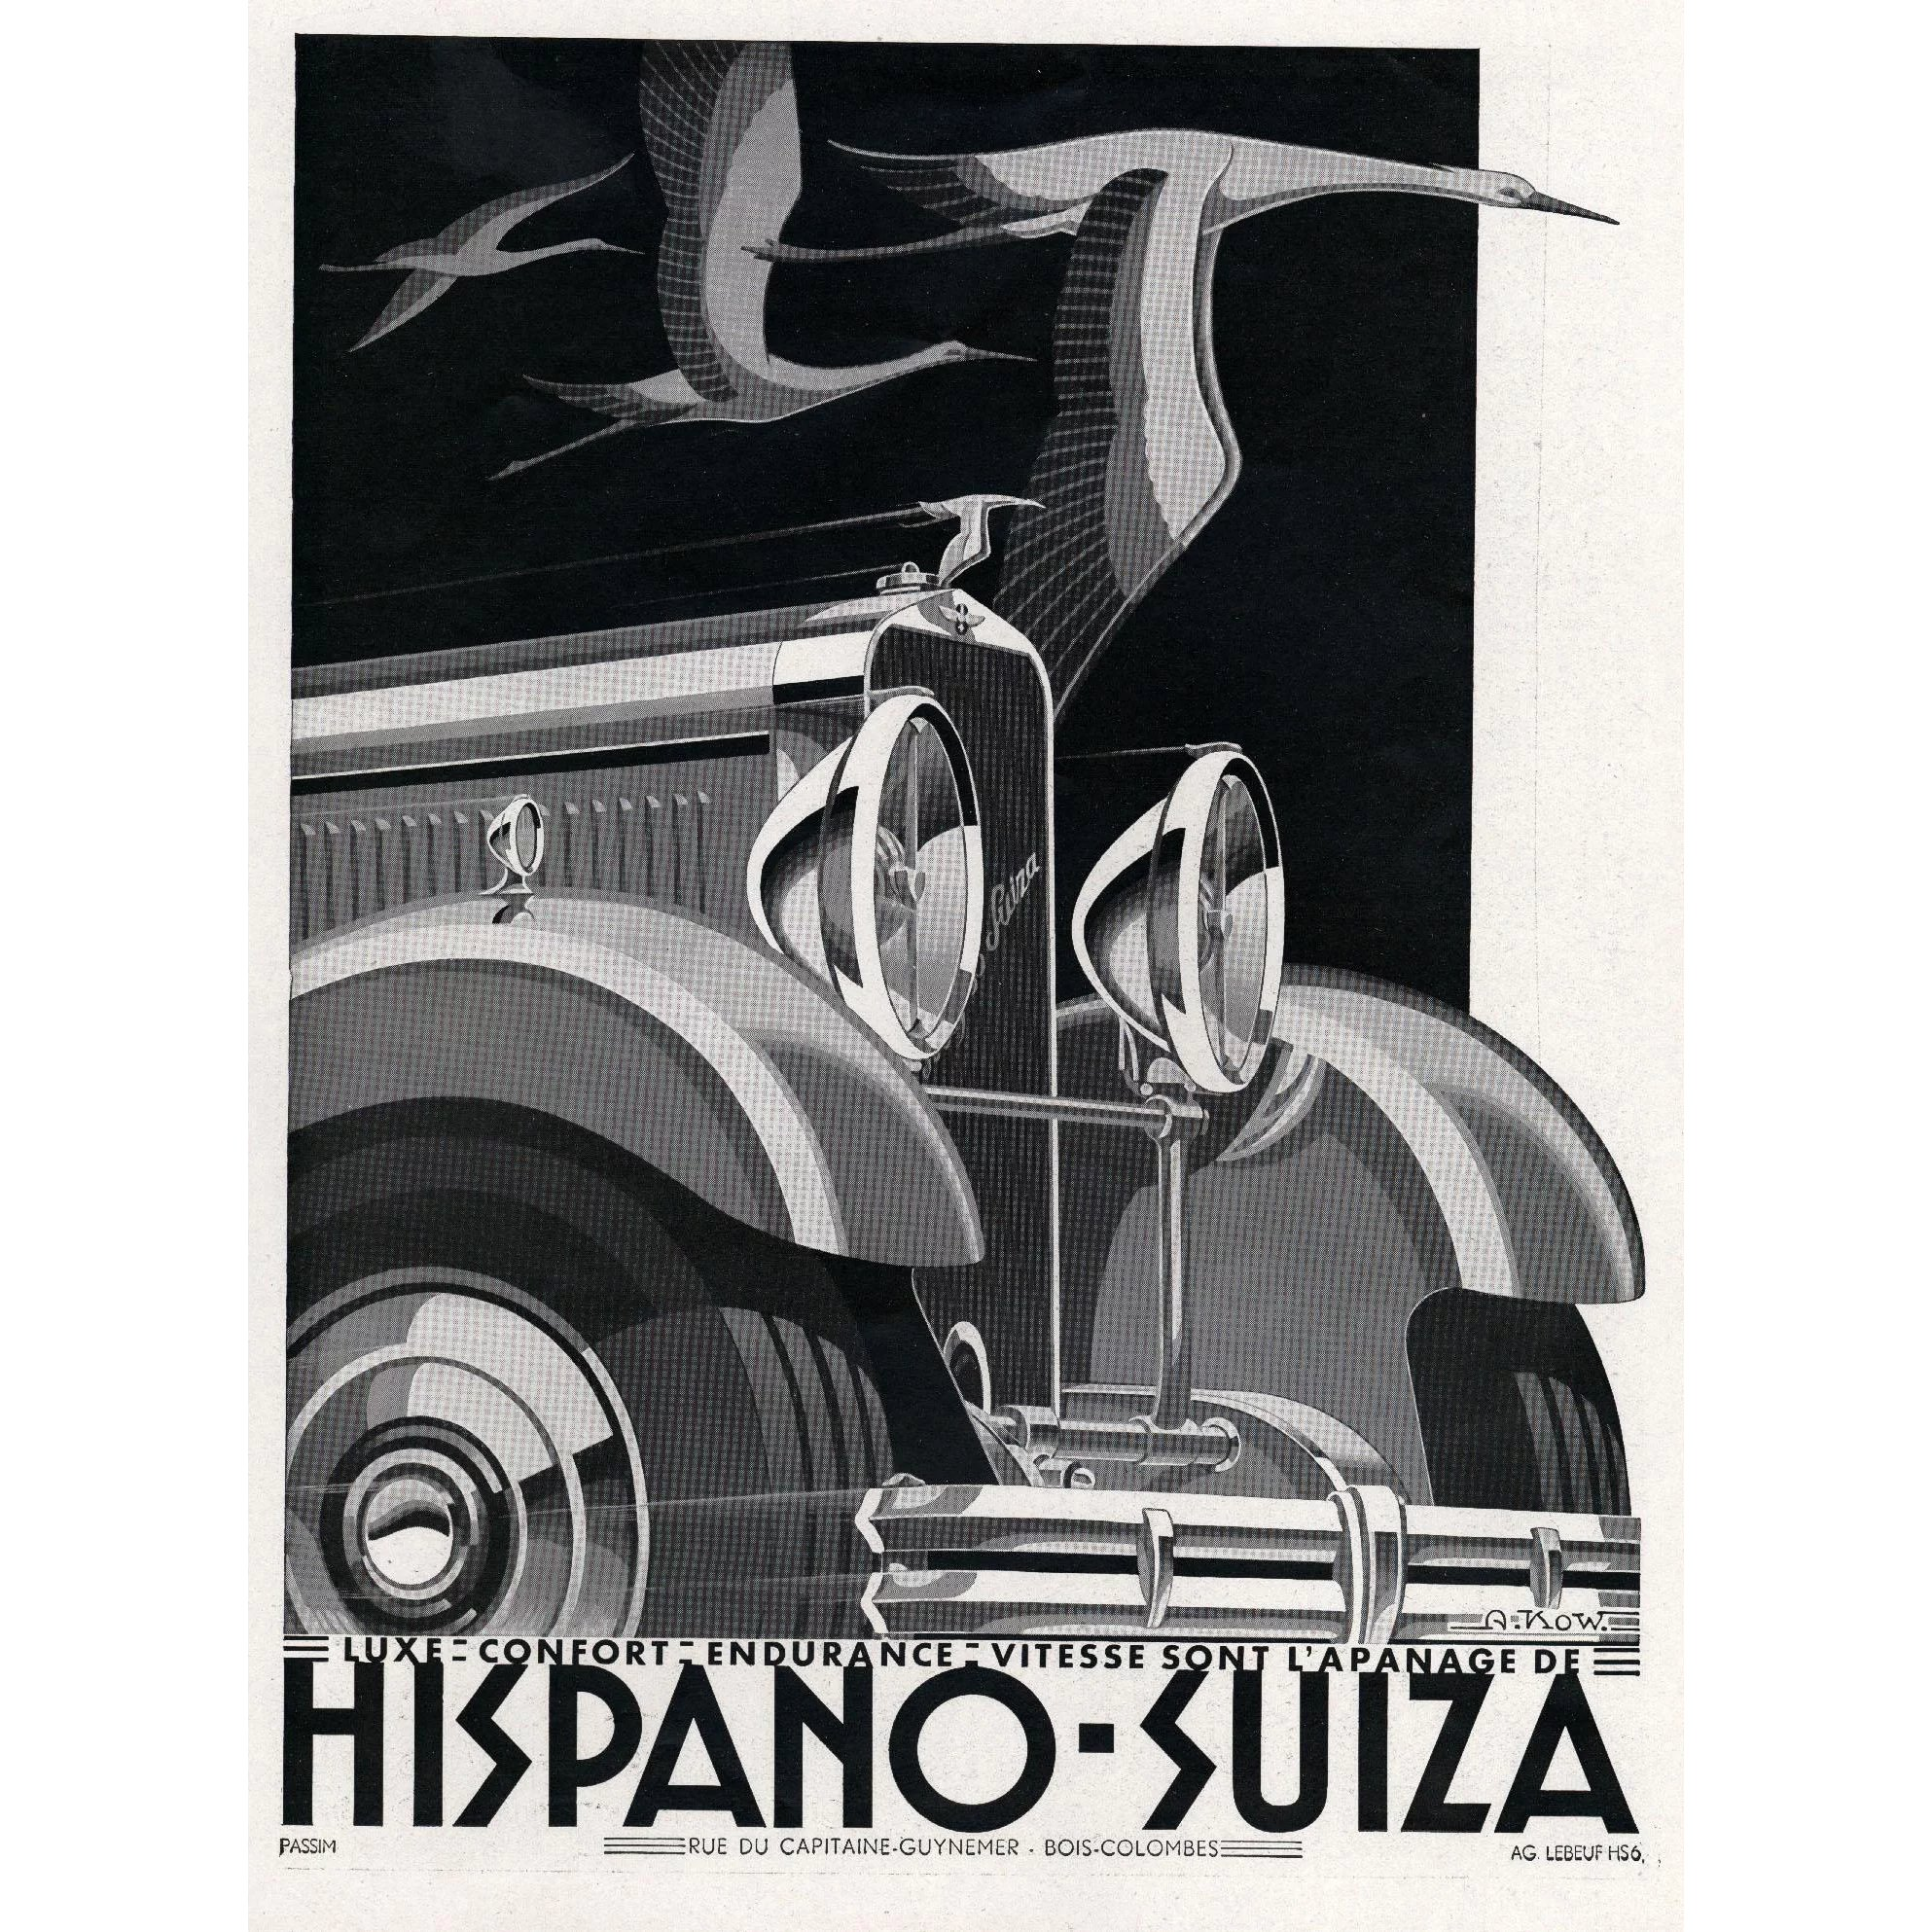 Hispano-Suiza Art Deco Vintage Automobile Print : YoshaGraphics ...